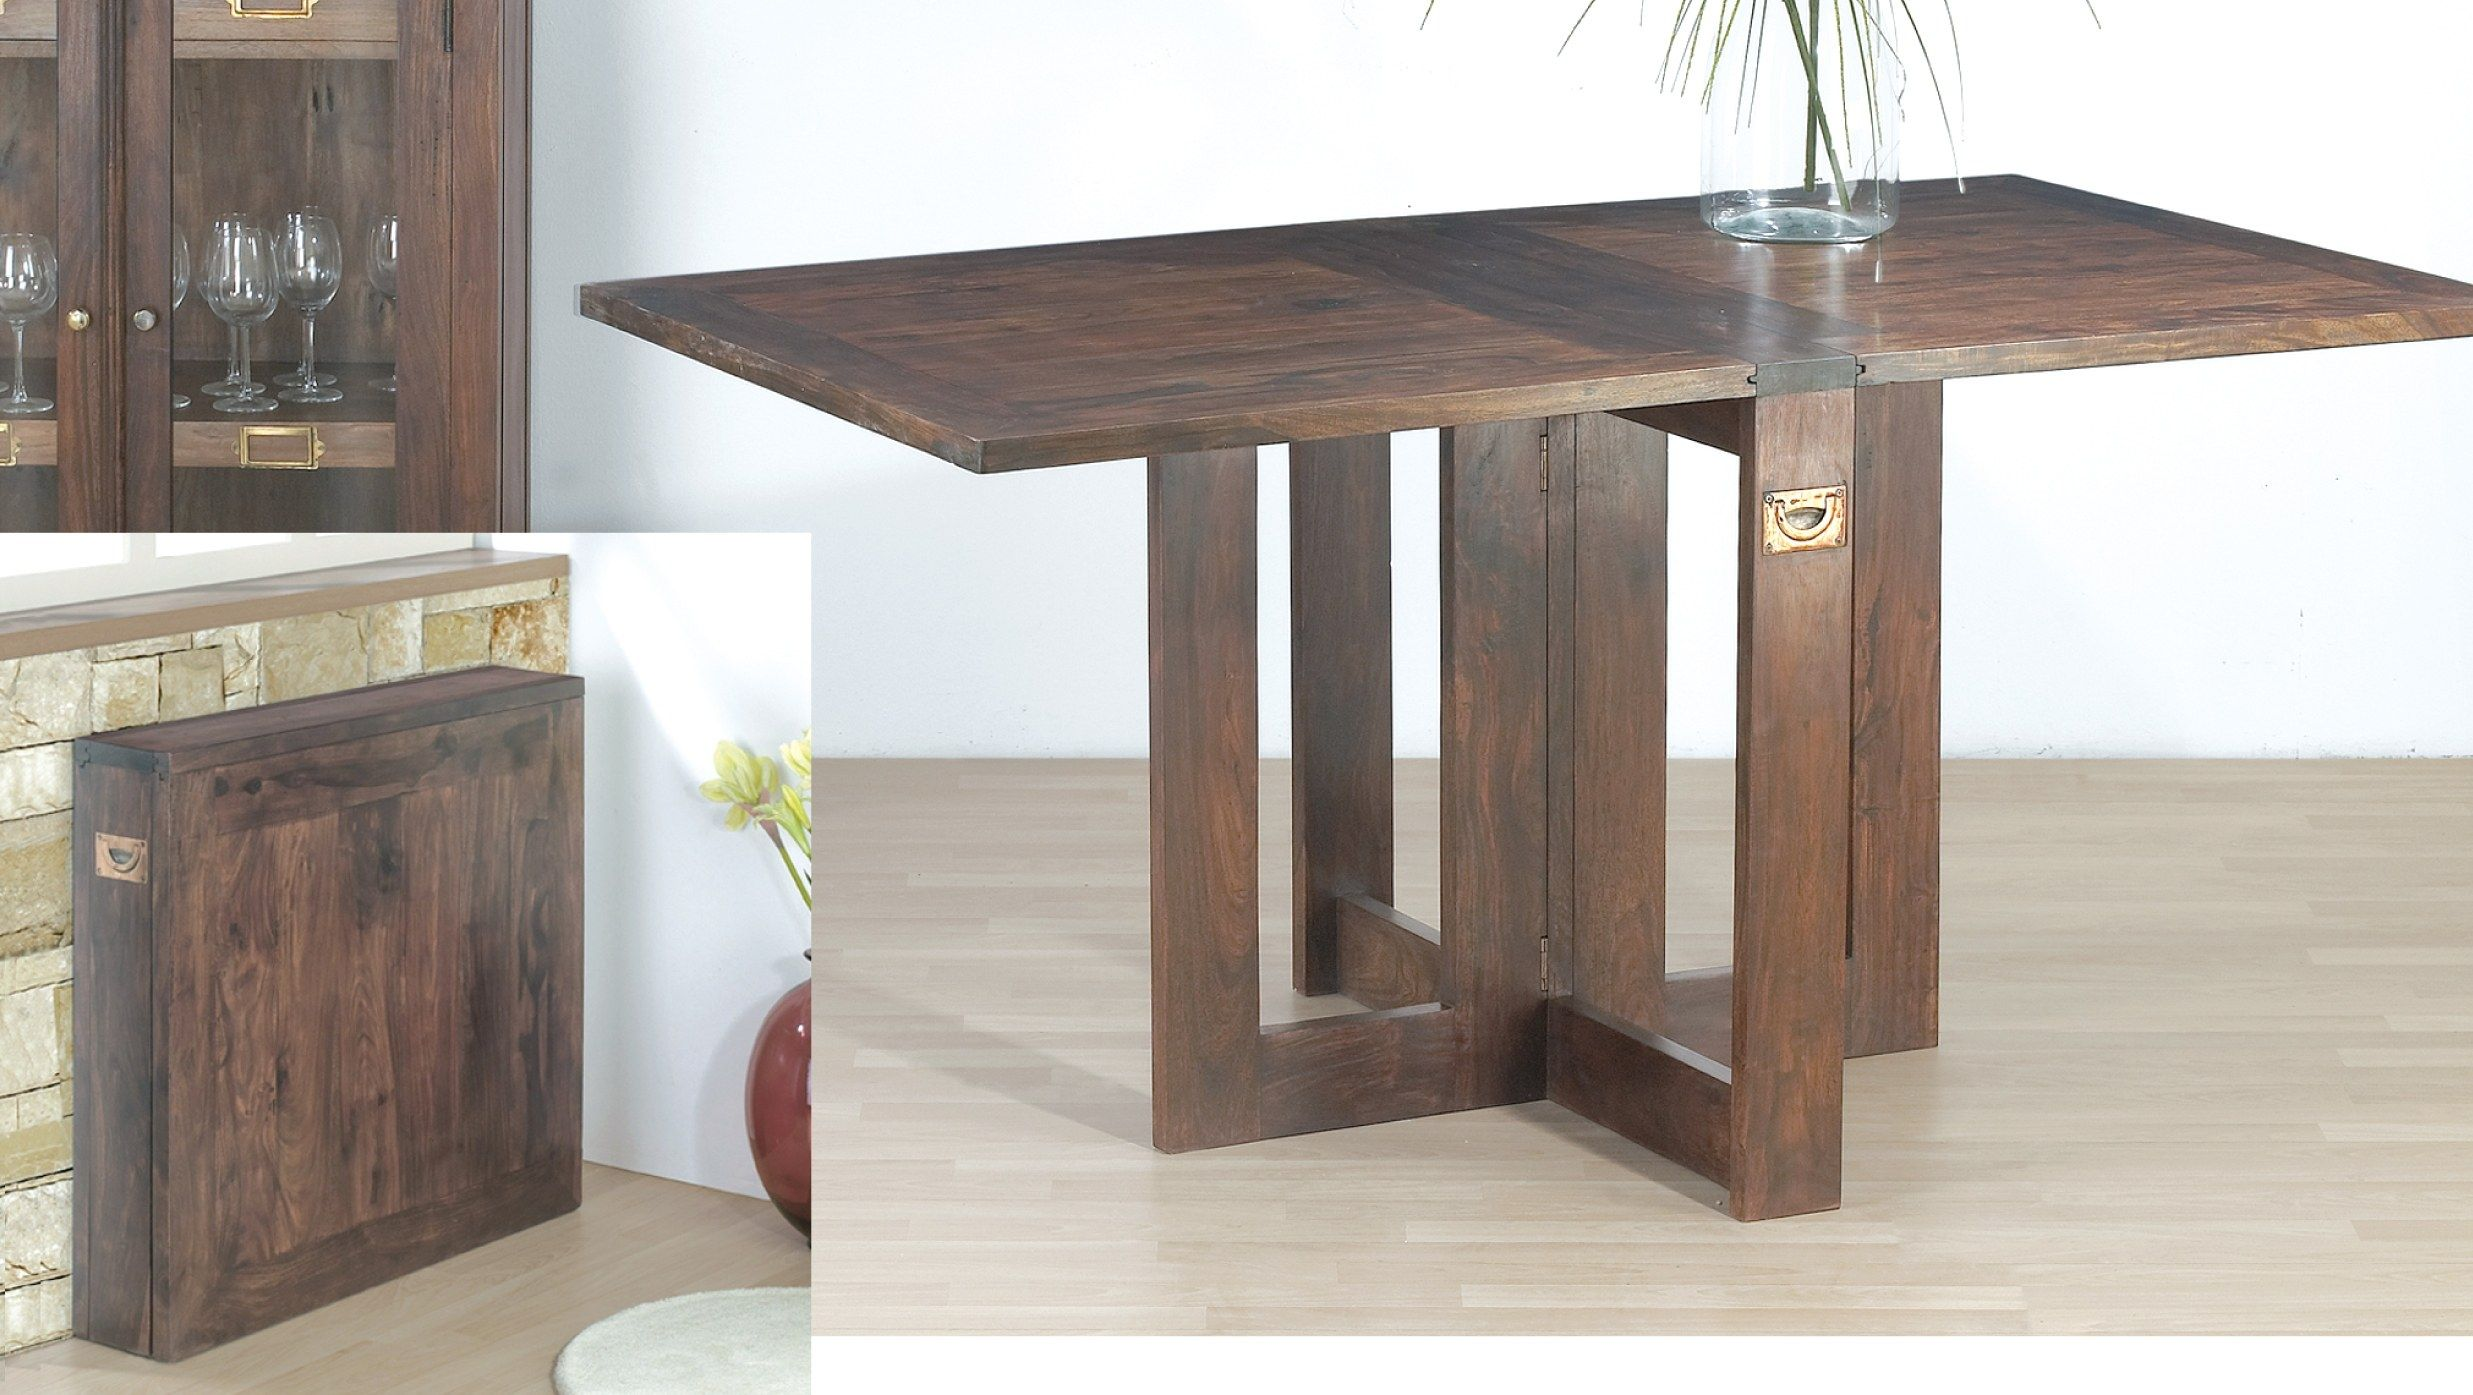 Tremendous Stylish Ideas Collapsible Dining Table Super Dark Wood Gmtry Best Dining Table And Chair Ideas Images Gmtryco